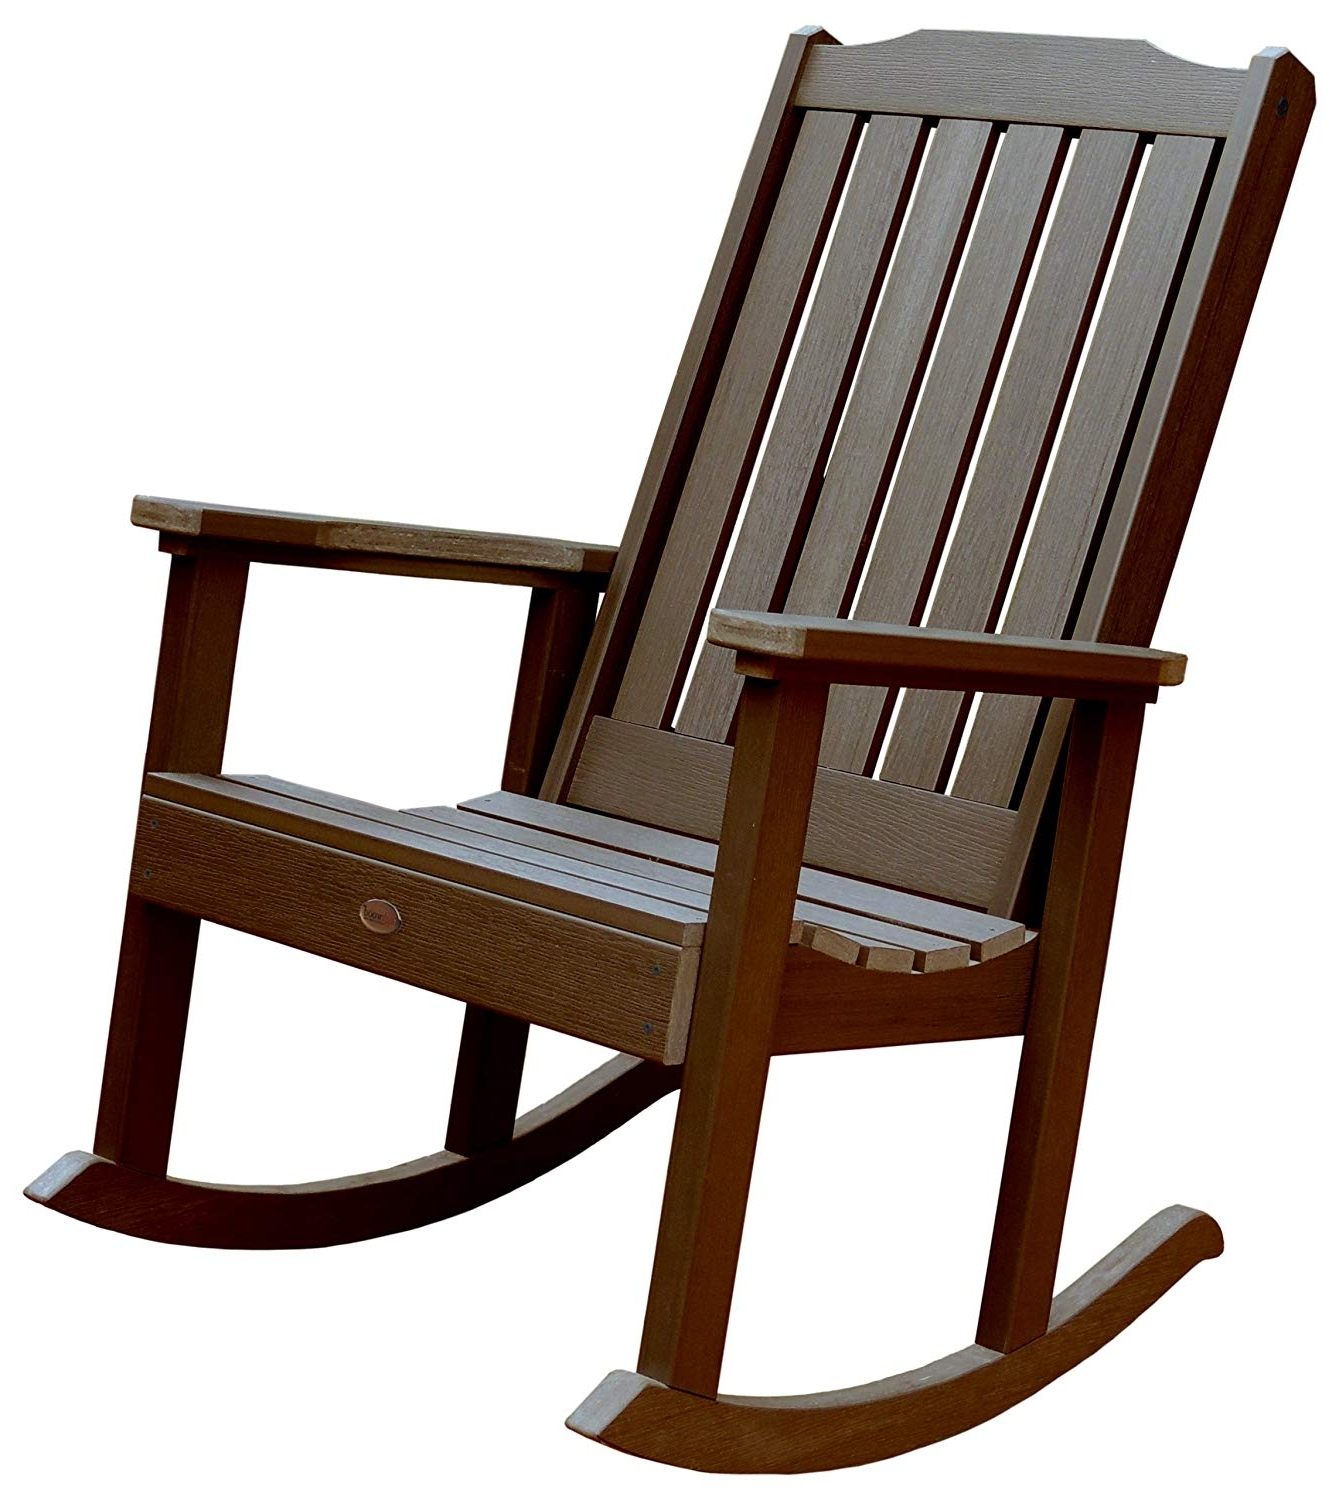 Amazon : Highwood Lehigh Rocking Chair, Weathered Acorn : Patio For Most Up To Date Plastic Patio Rocking Chairs (View 1 of 15)